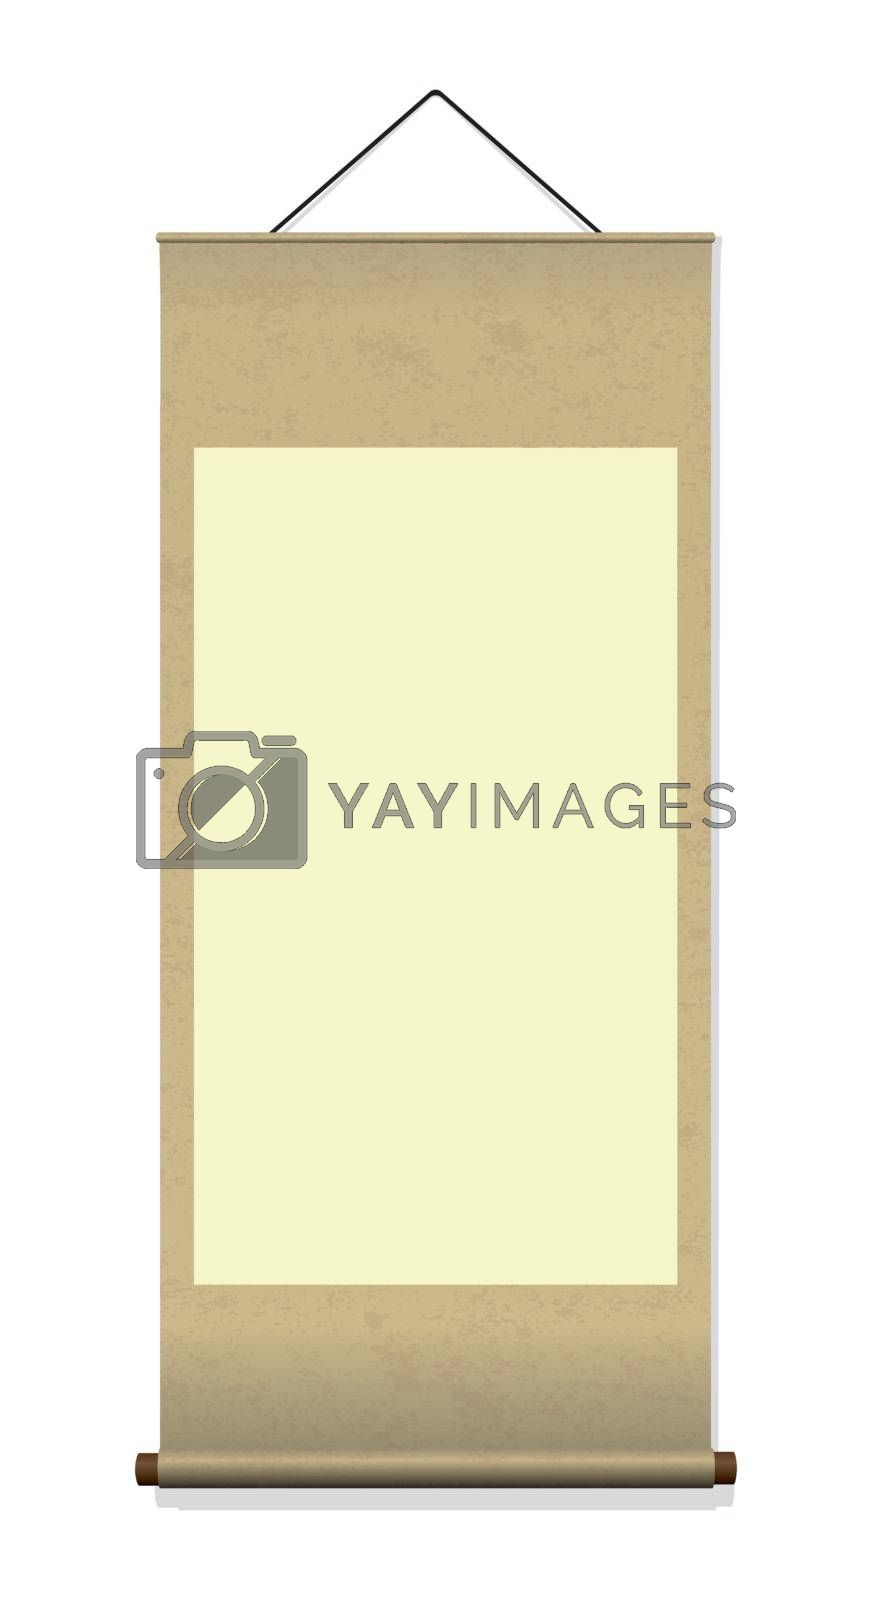 Royalty free image of Japanese hanging scroll illustration by barks